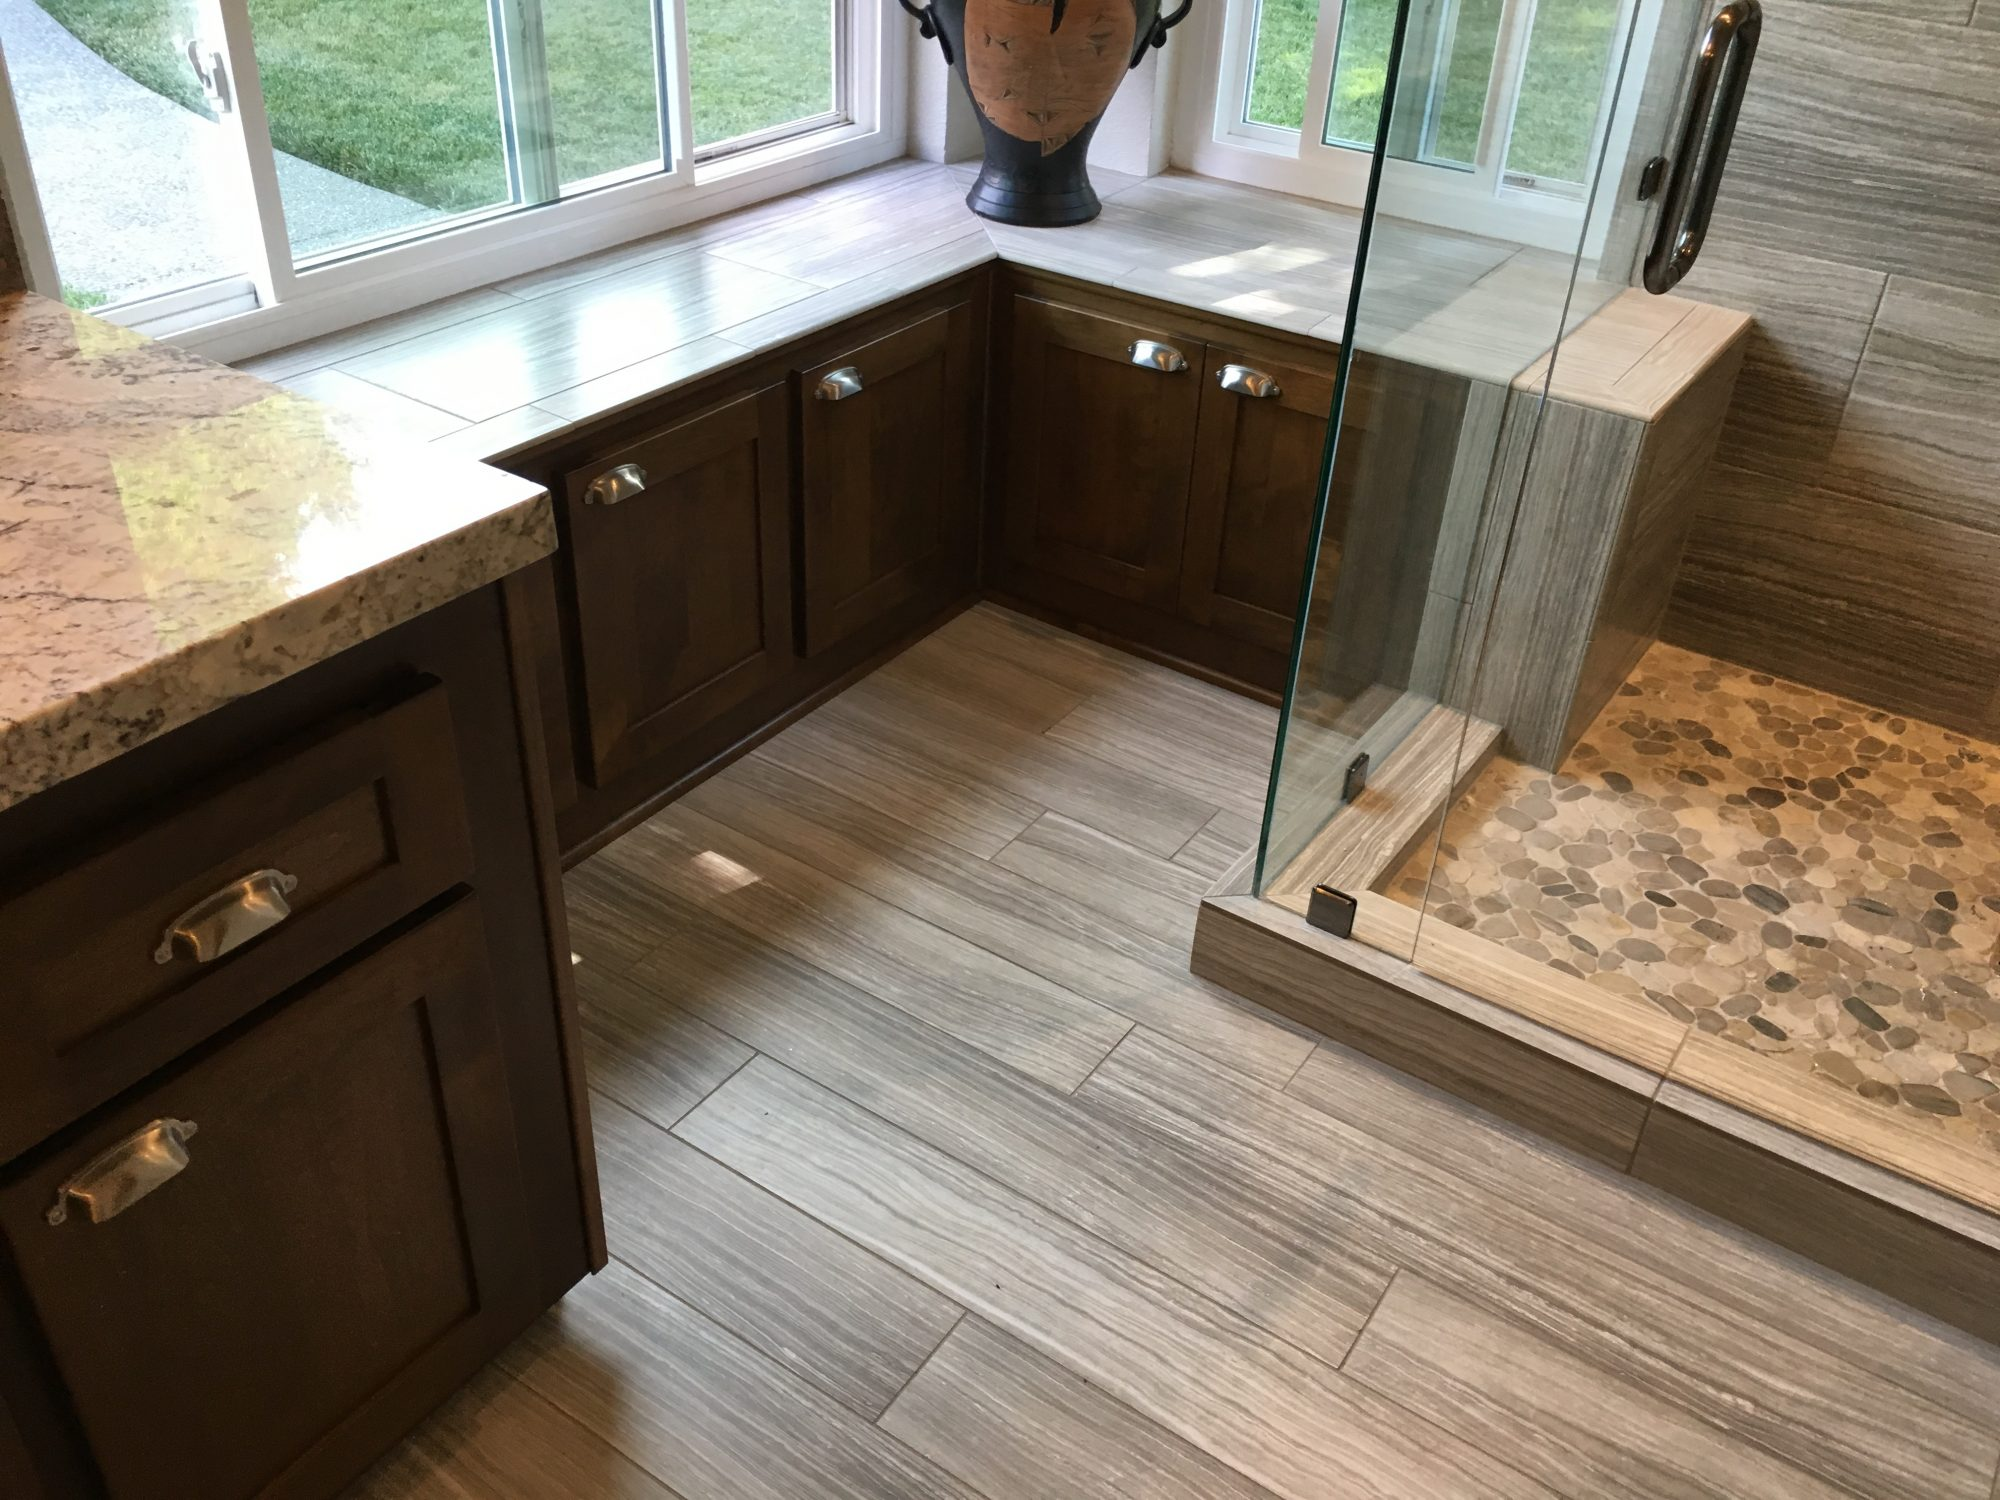 Bathroom Remodel - Reliable Home Improvement